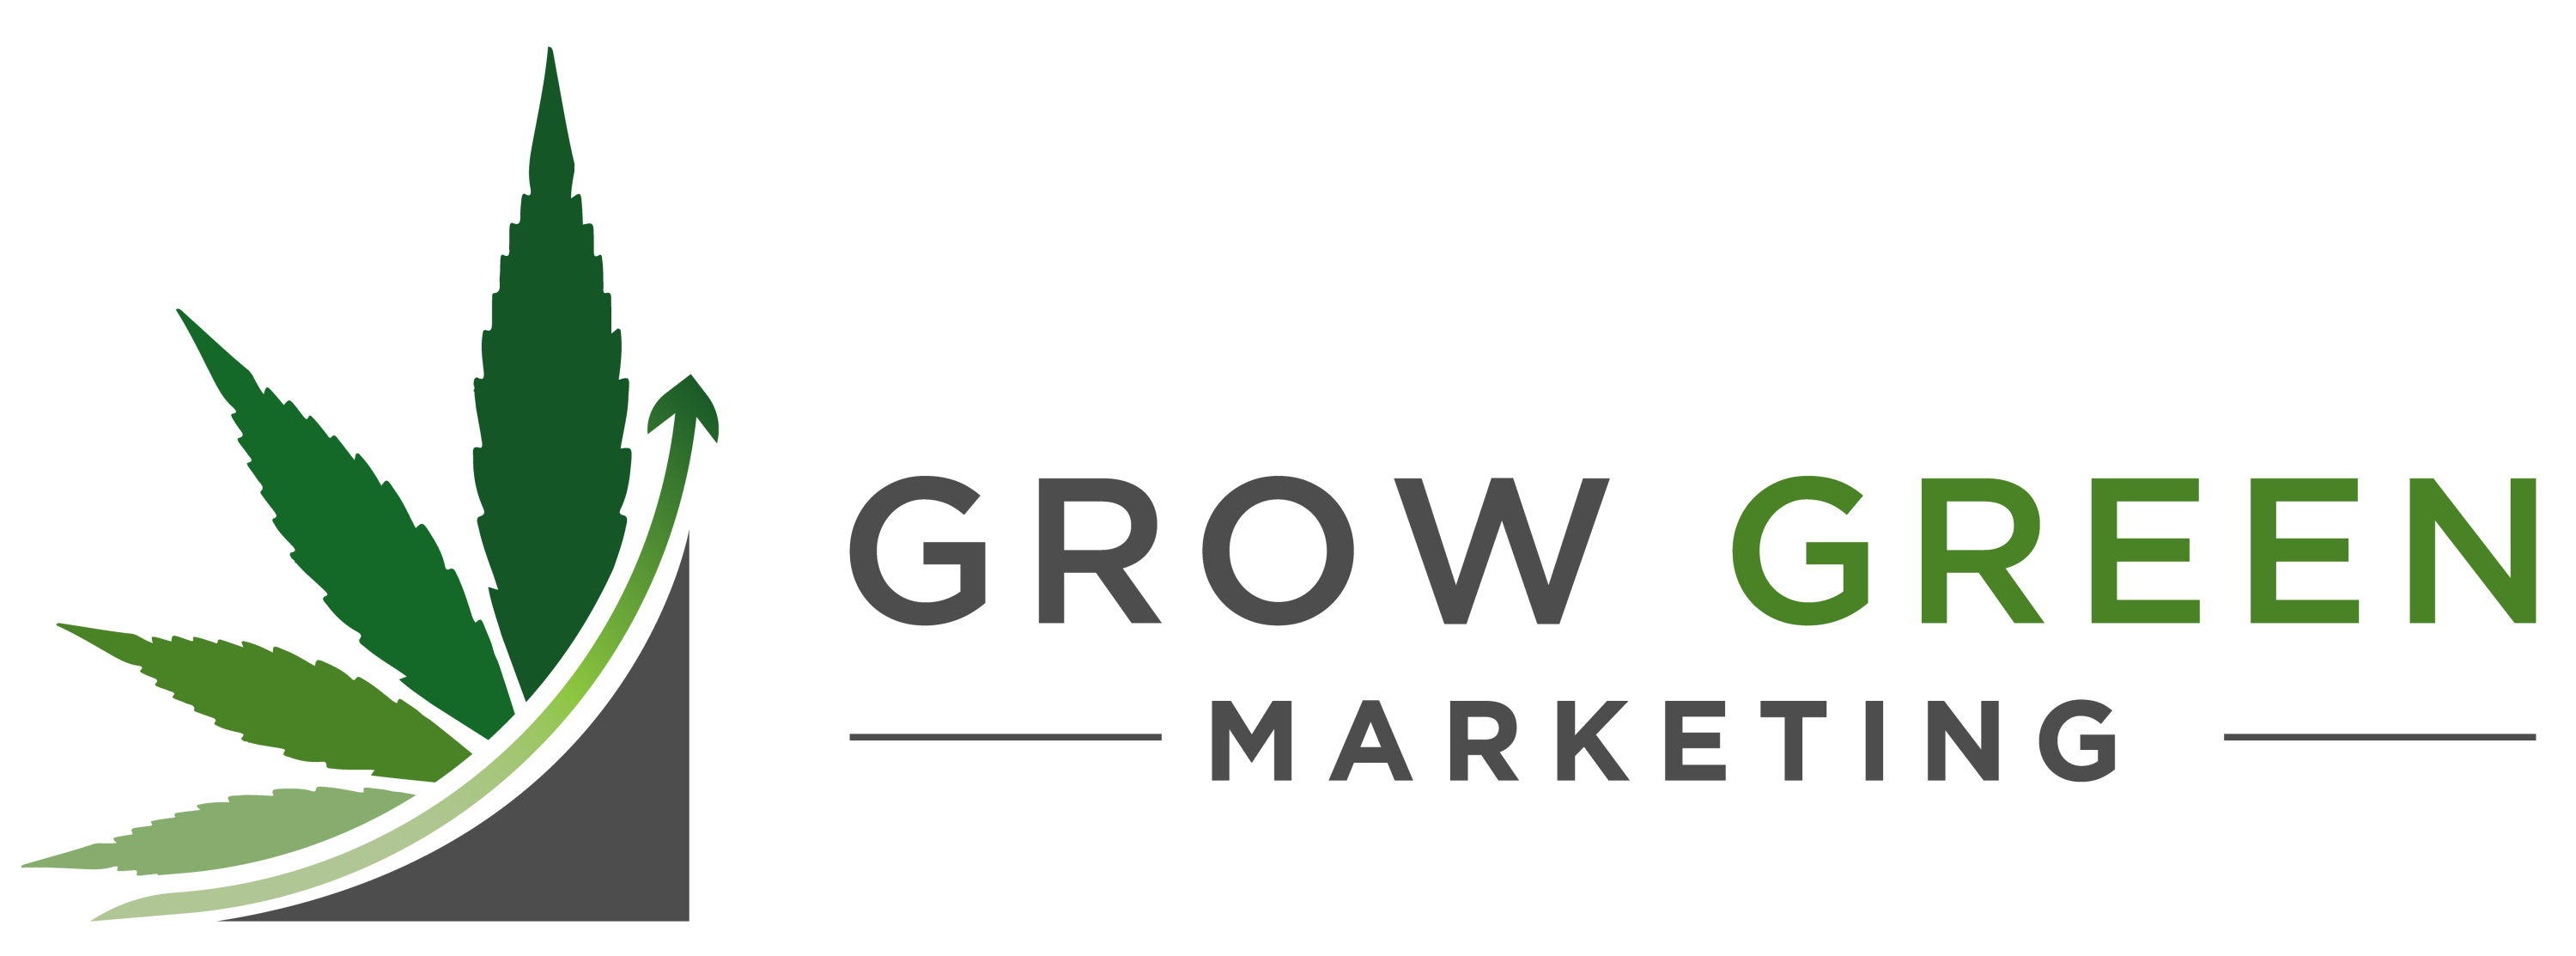 grow-green-marketing-logo